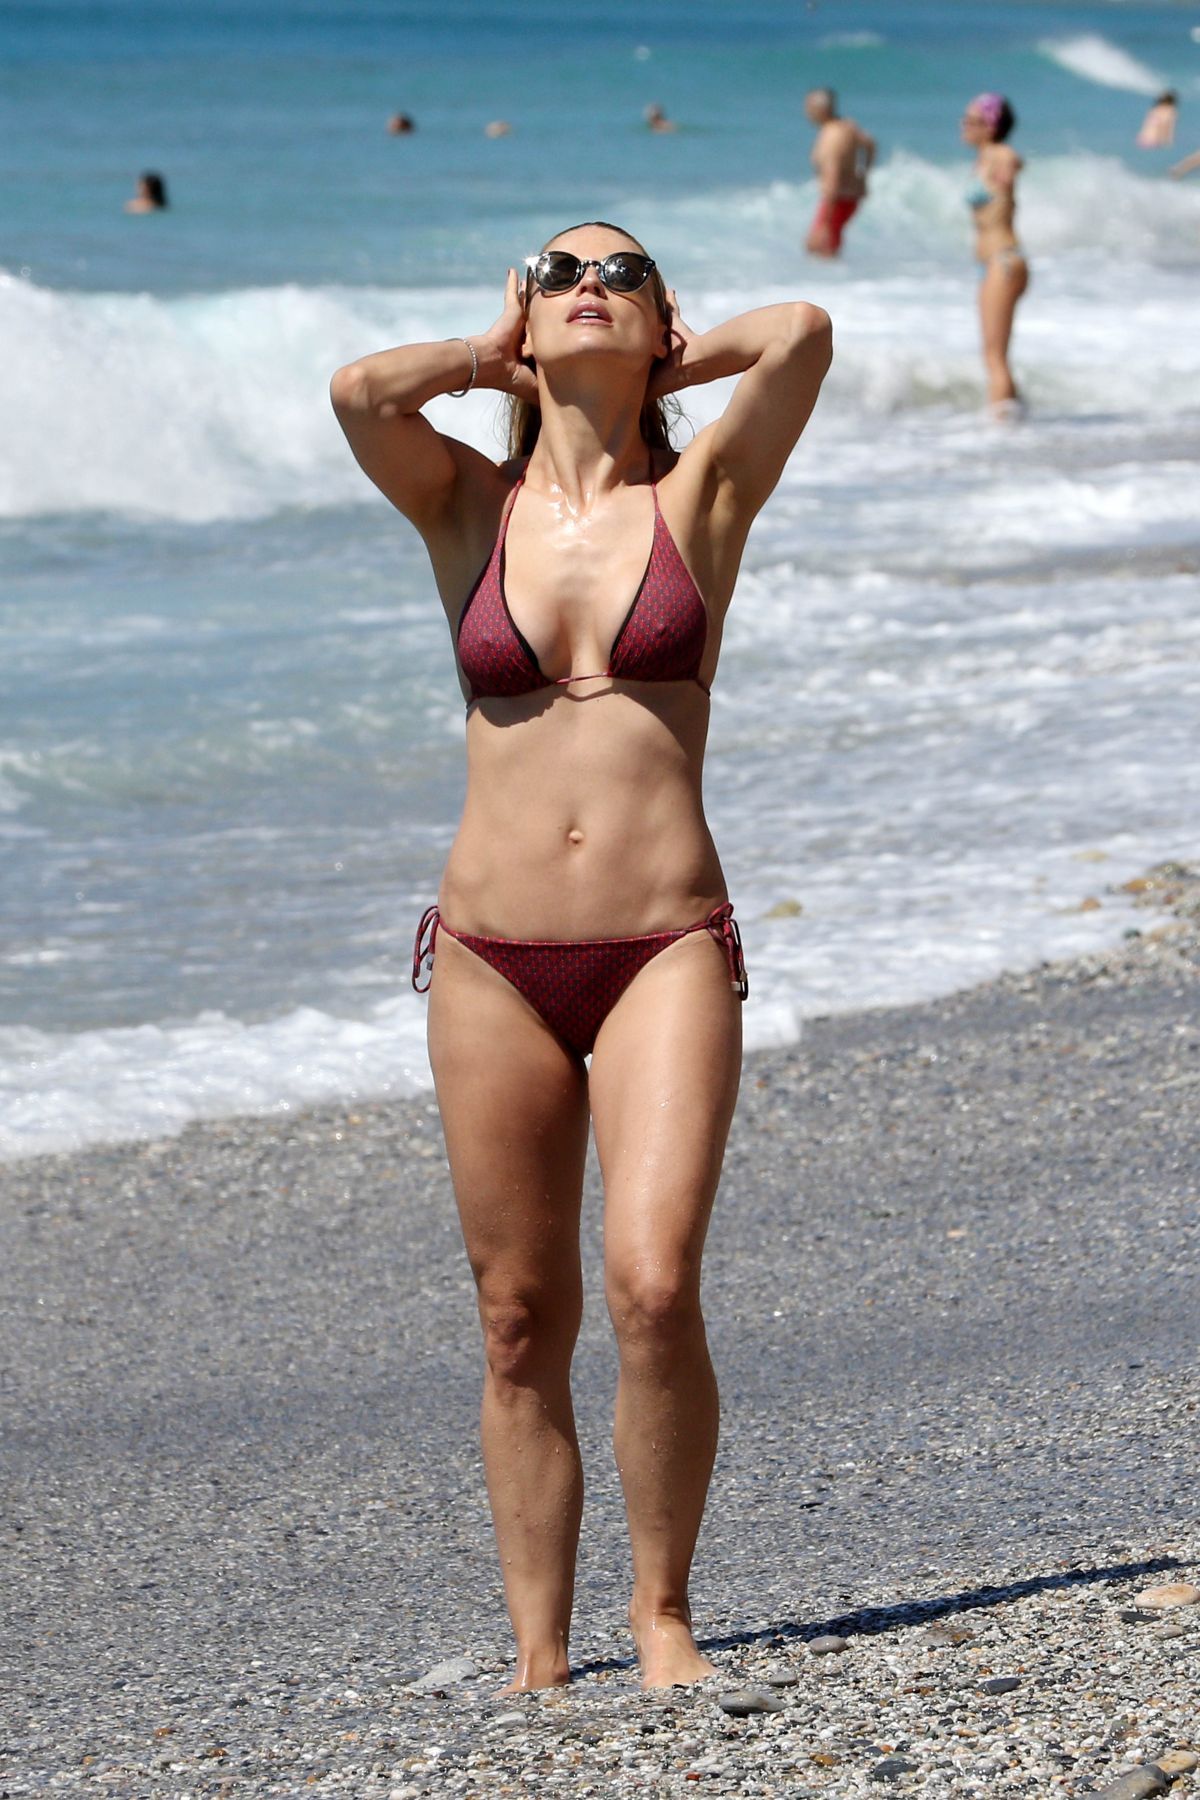 Michelle Hunziker Seen on the beach in bikini in Varigotti, Italy